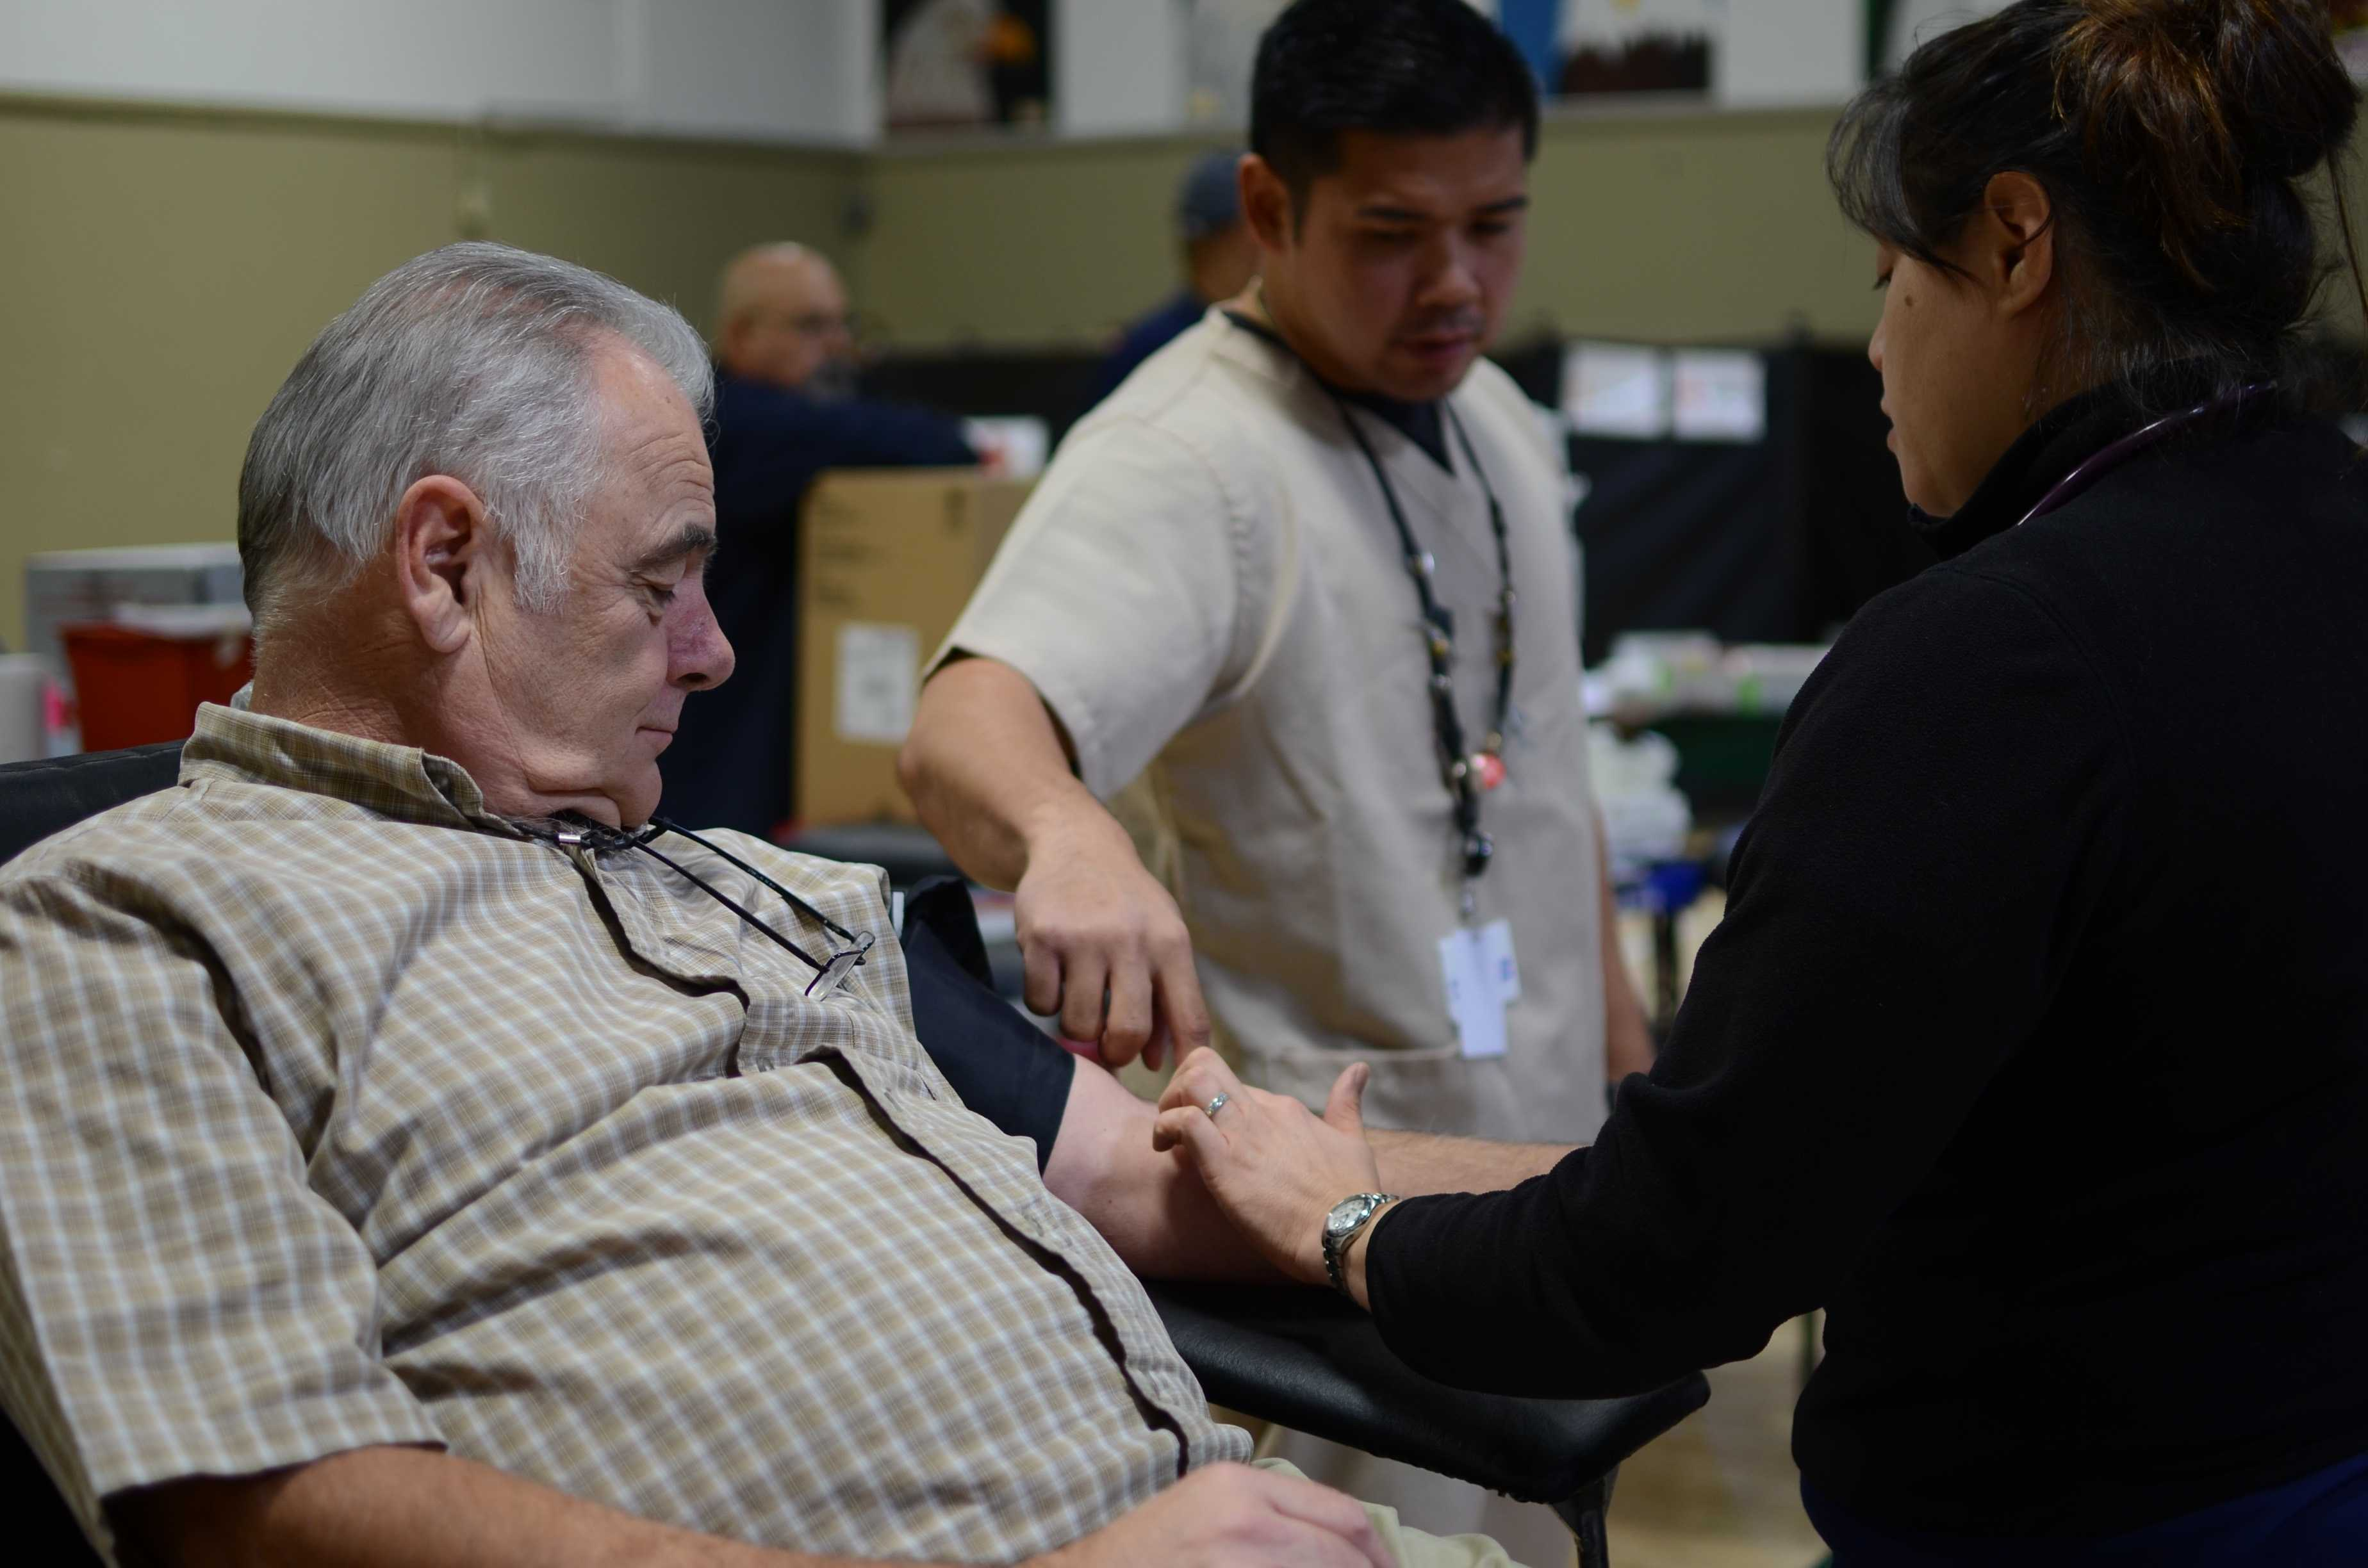 Gary Blickenstaff had one pint of blood drawn today at the Red Cross Club's annual blood drive during long lunch. Blood units from this event were donated to the American Red Cross in the Bay Area.